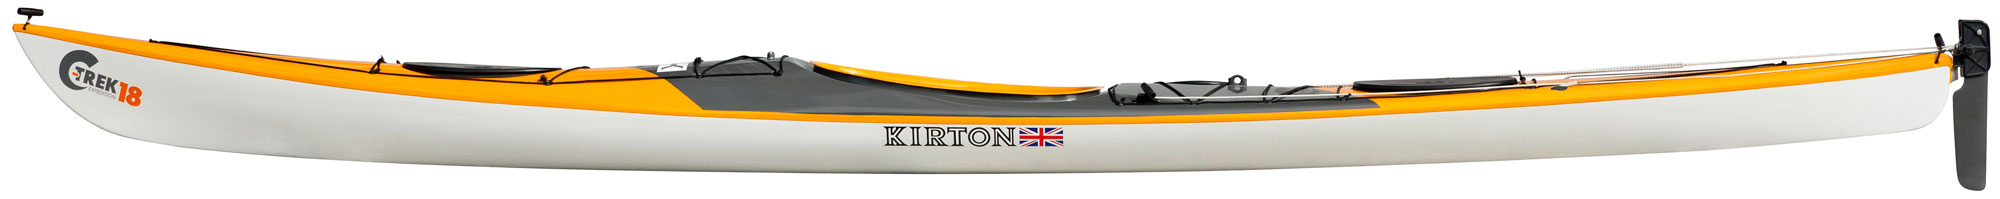 C-trek 18 side sea single kayak